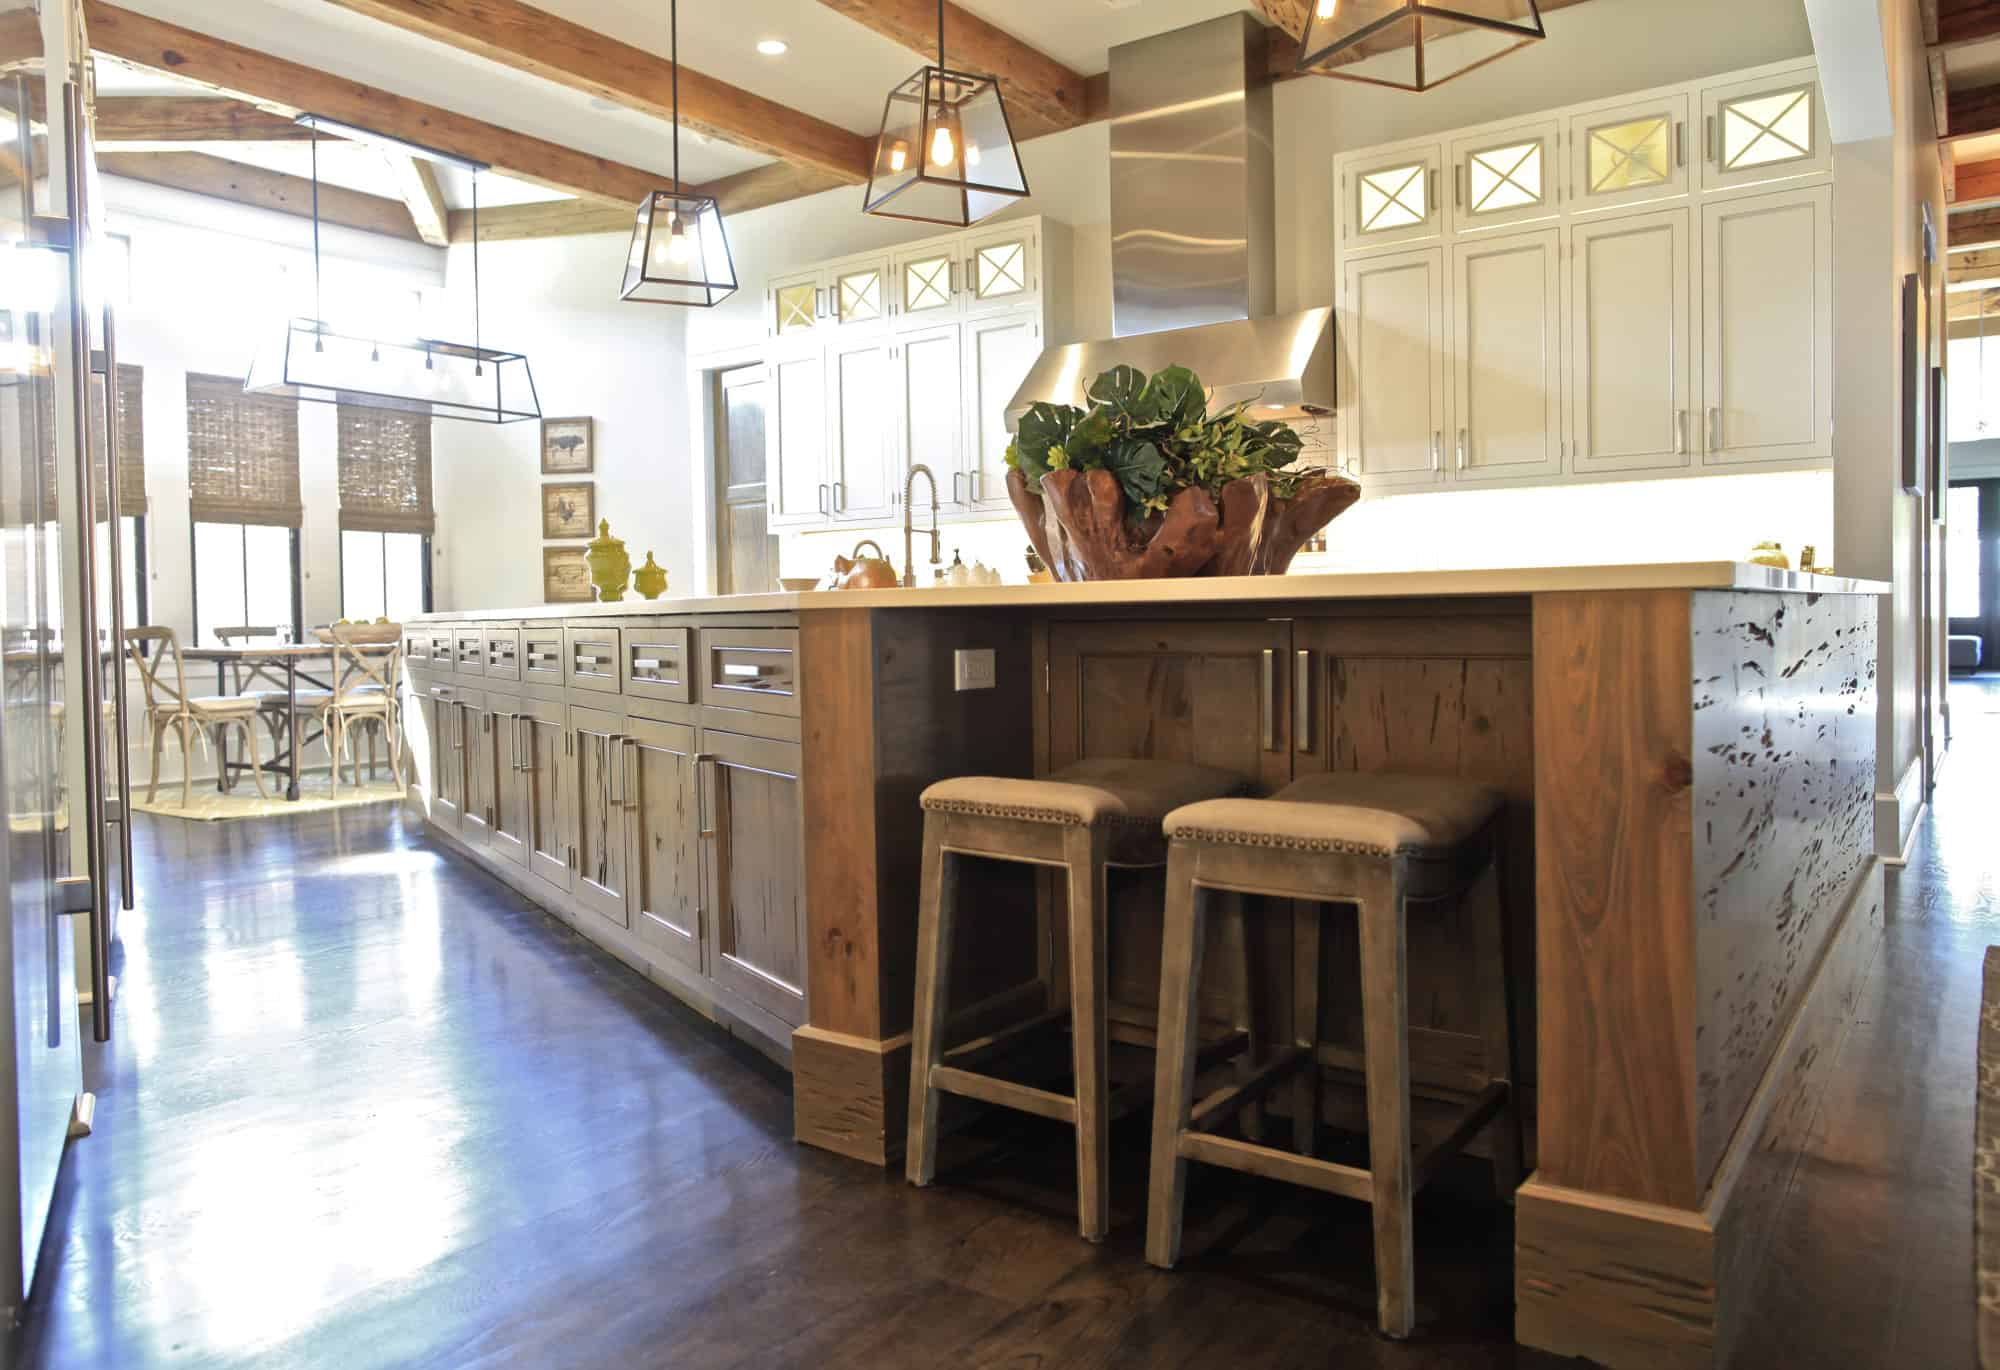 Make a statement with a cypress wood kitchen island. Its intricate detailing makes it much more than just a wooden detail in your kitchen